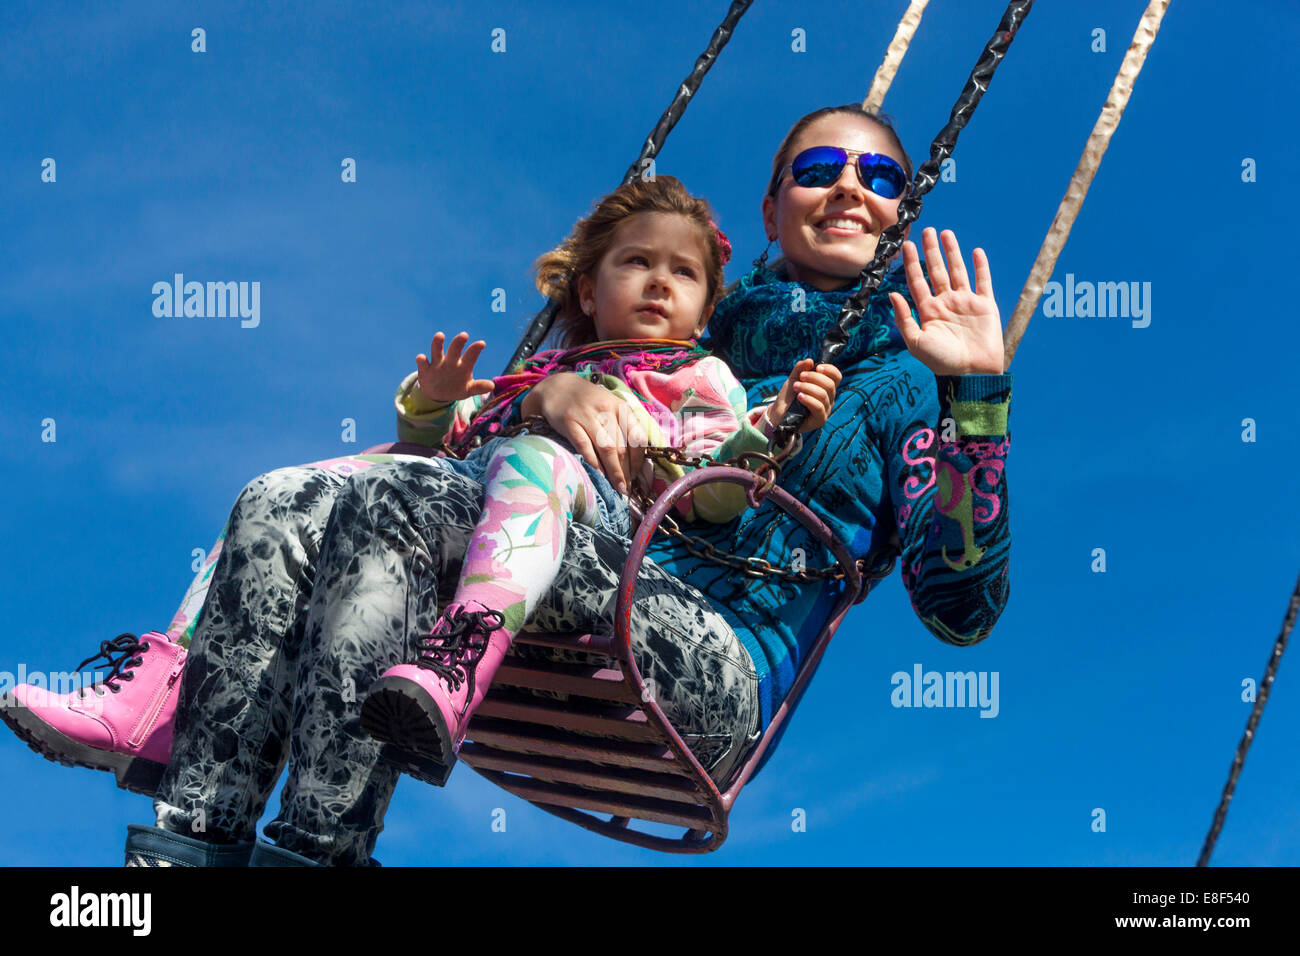 mother with daughter  on the chain swing carousel, amusement park - Stock Image